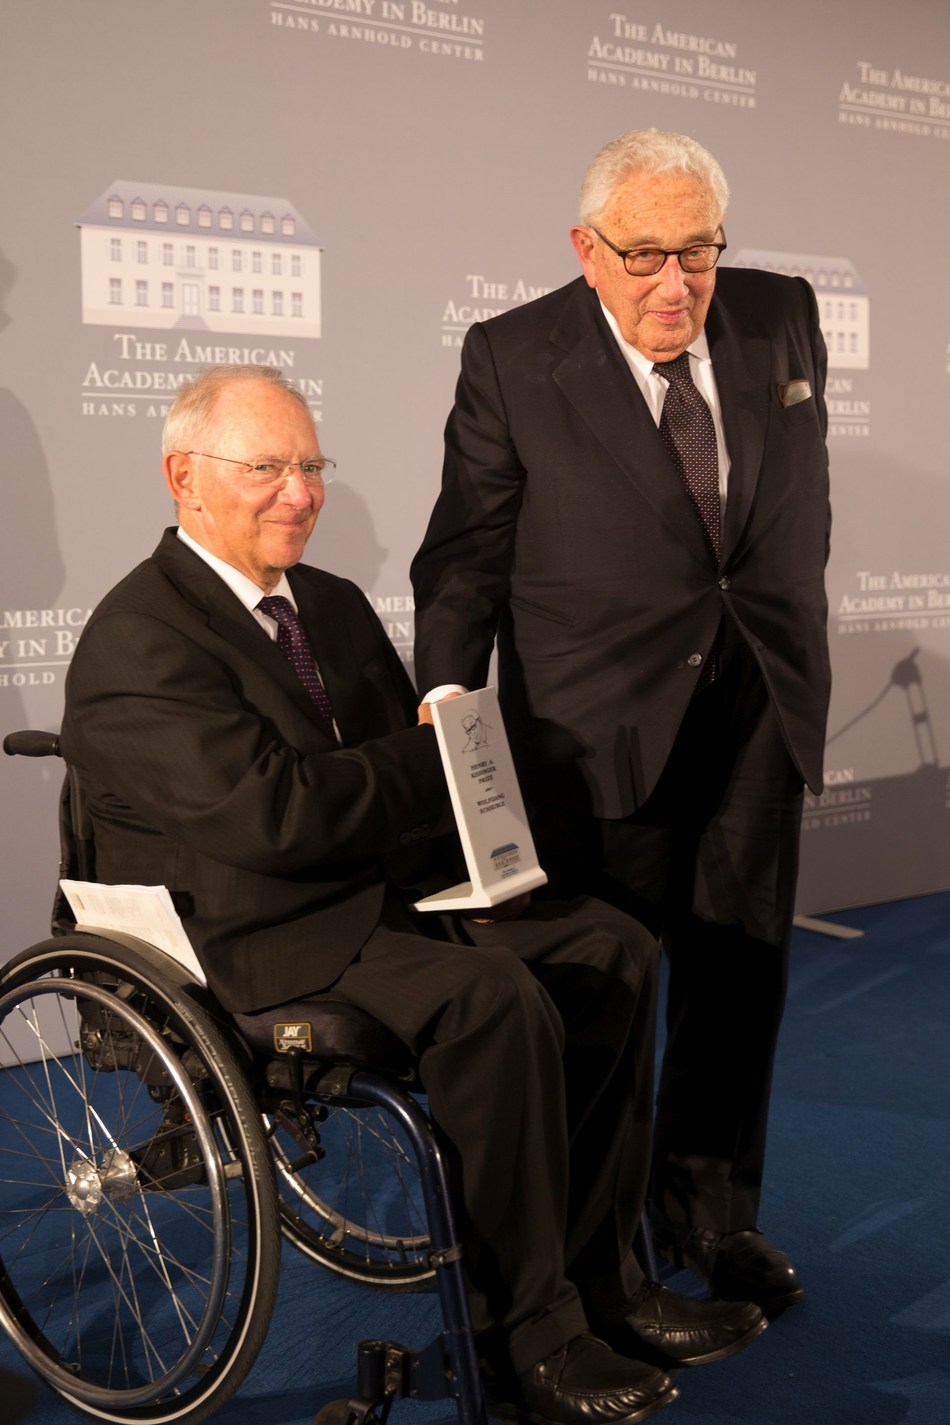 The American Academy in Berlin has awarded the 2017 Henry A. Kissinger Prize to Germany's Federal Minister of Finance Wolfgang Schäuble. Former US Secretary of State Henry A. Kissinger personally presented the prize to Minister Schäuble. (Credit: Annette Hornischer) (PRNewsfoto/American Academy in Berlin)